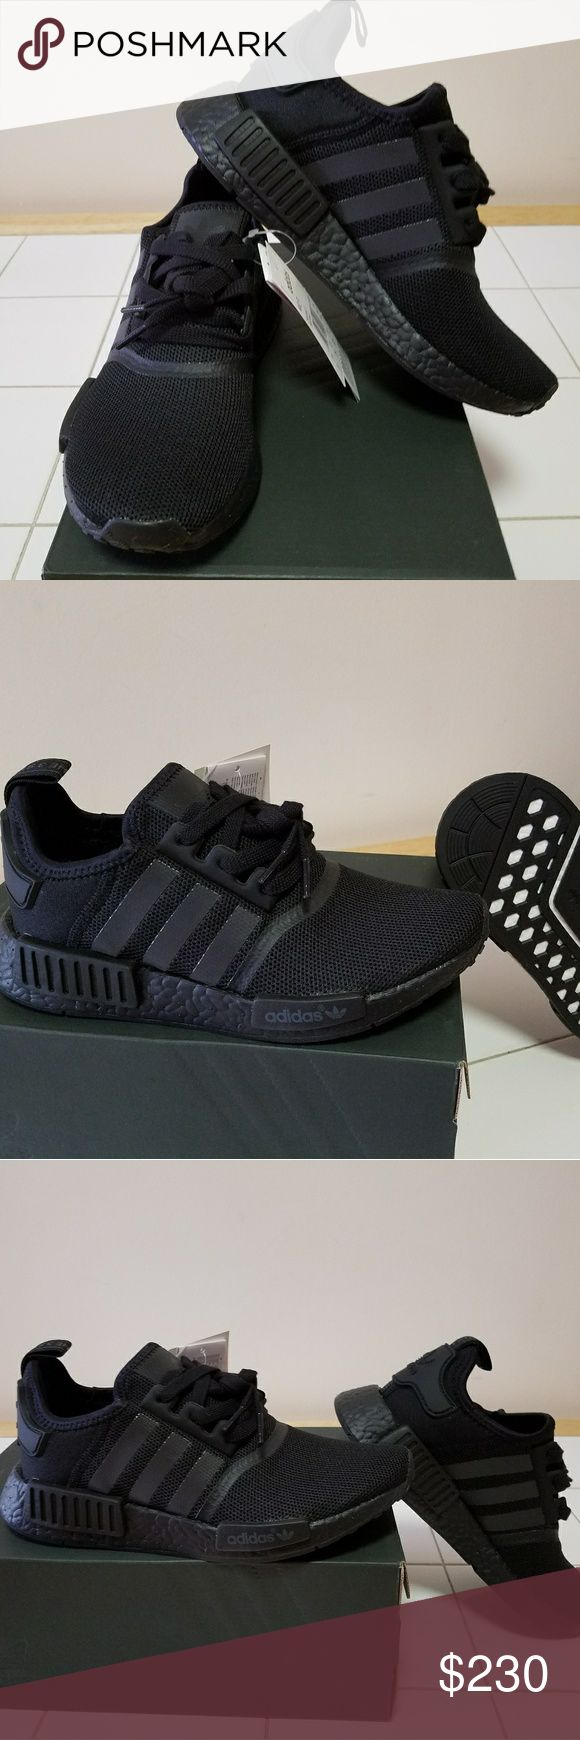 adidas nmd r1 primeknit japan triple black adidas ultra boost uncaged black blue